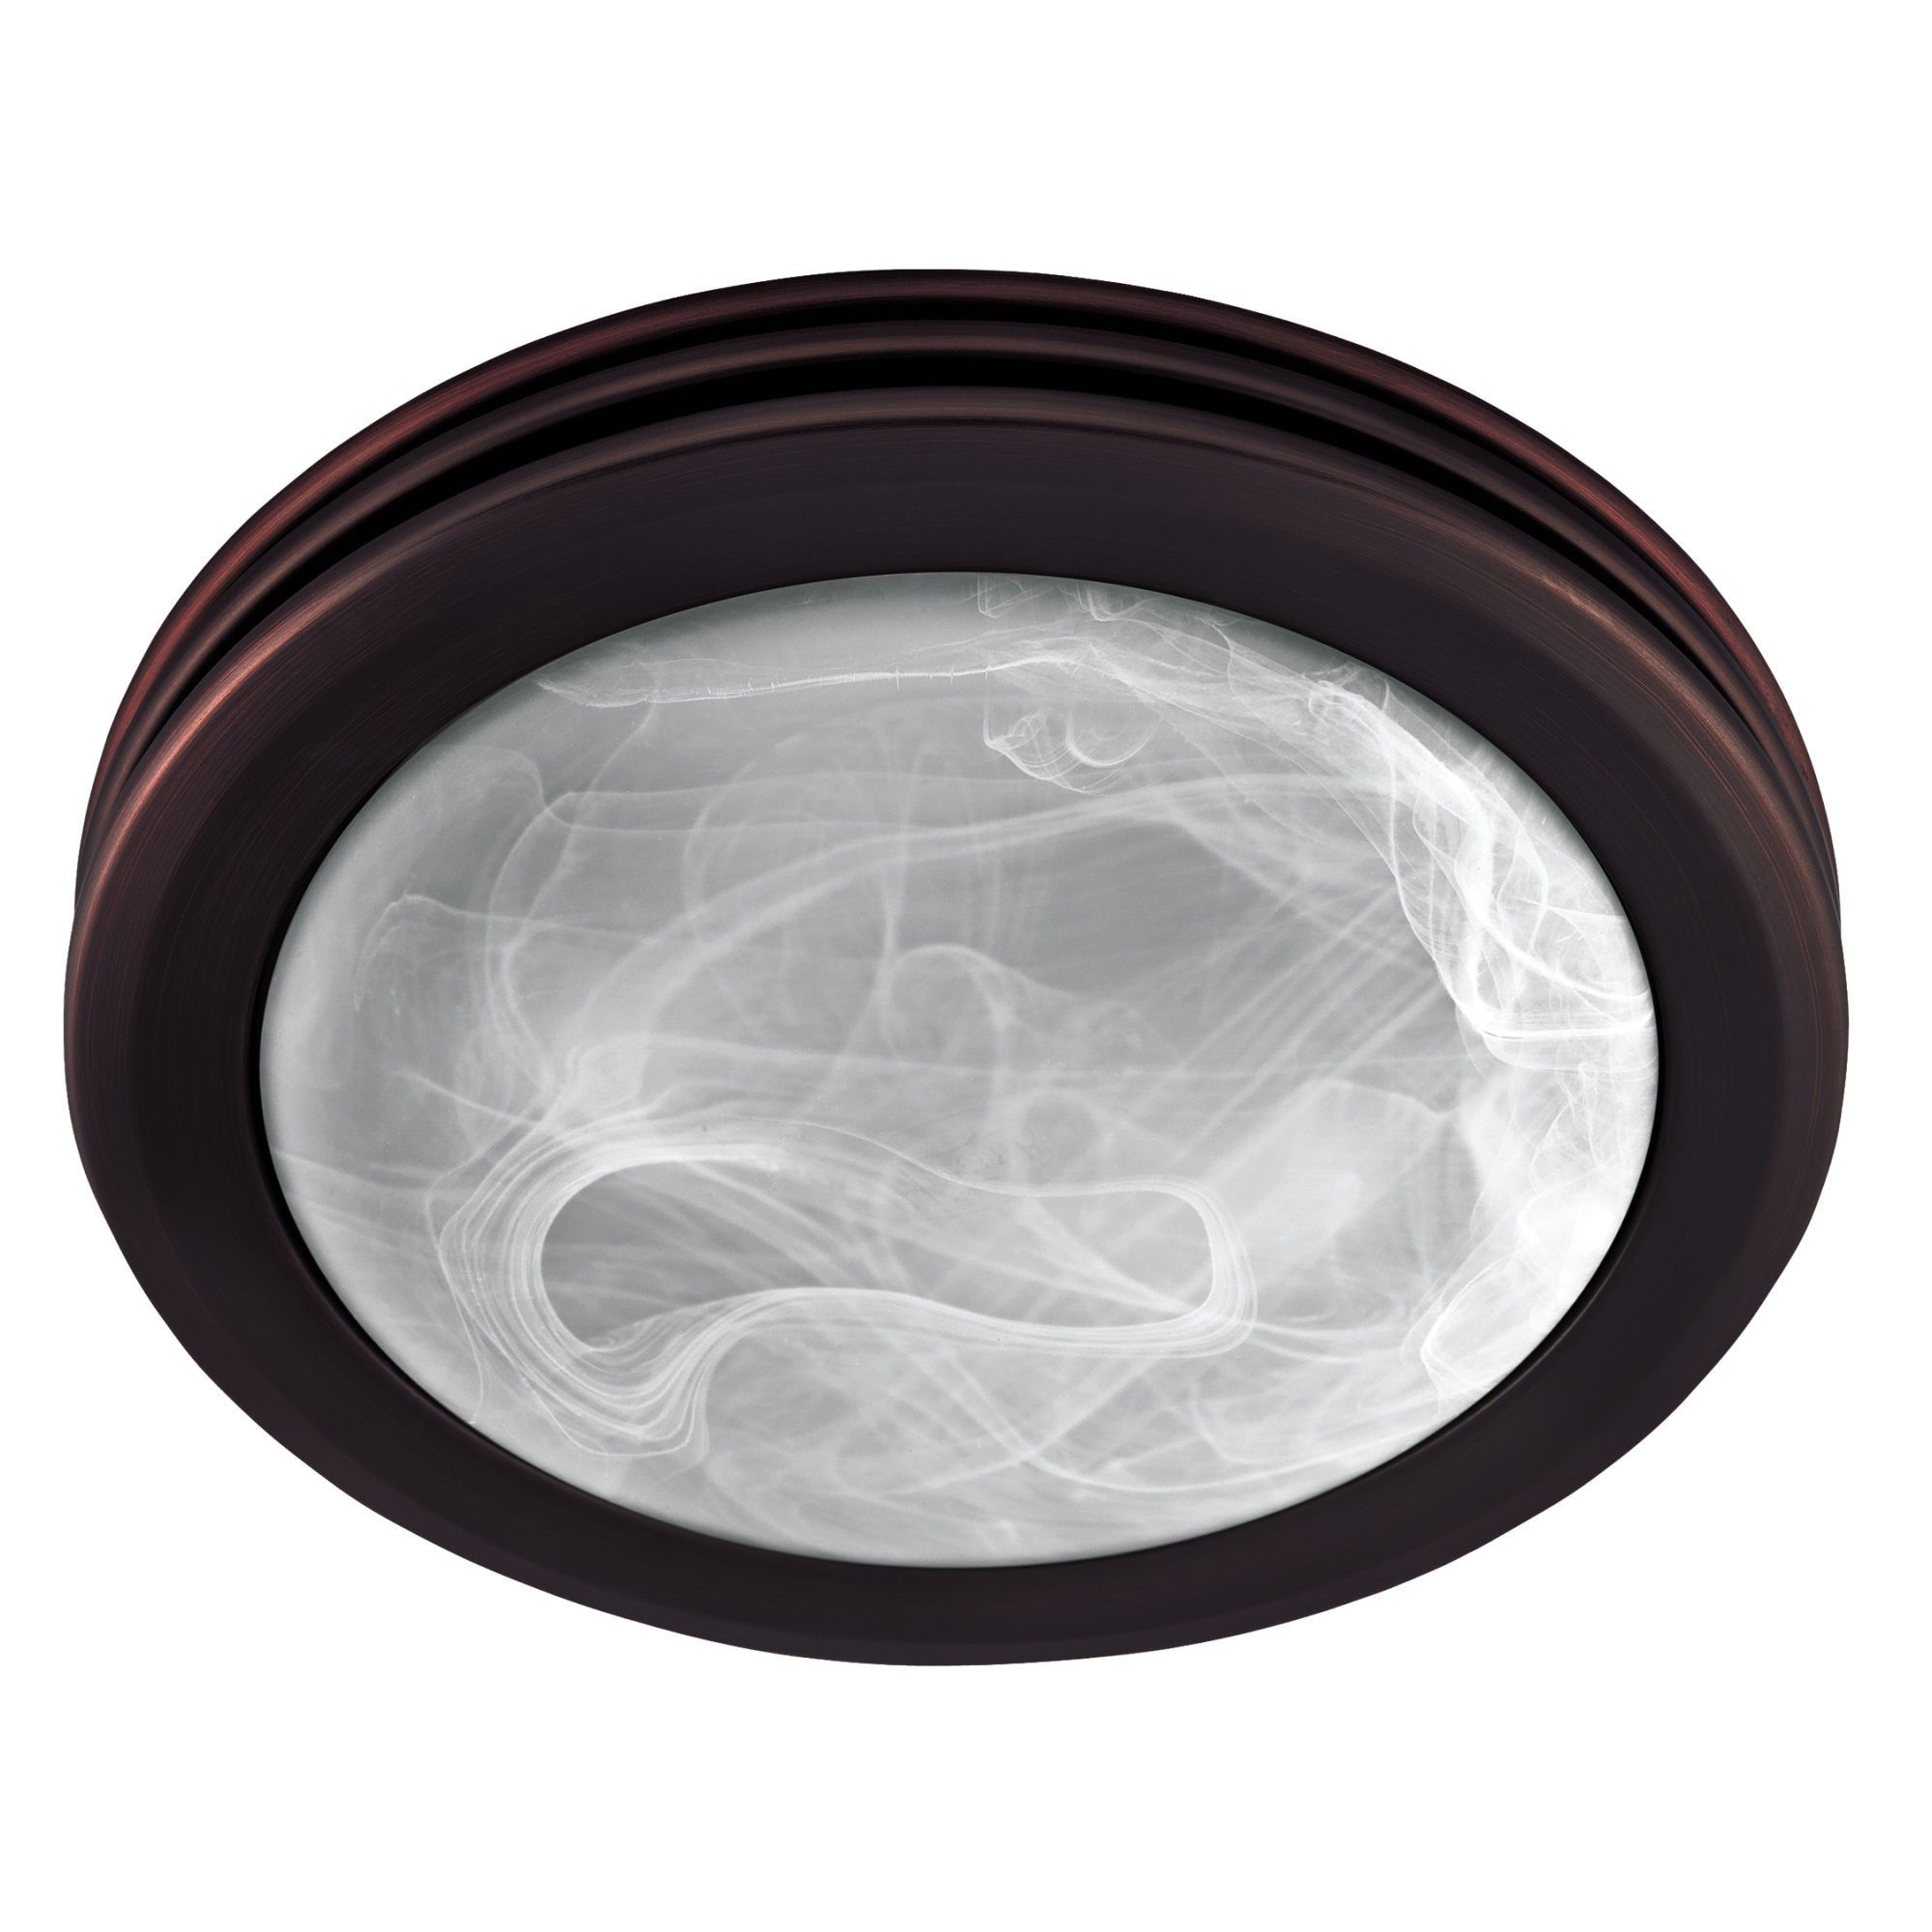 Elegant Buy The Hunter 90058 Imperial Bronze Direct. Shop For The Hunter 90058  Imperial Bronze 2 Light Bathroom Fan With Light From The Saturn Collection  And Save.